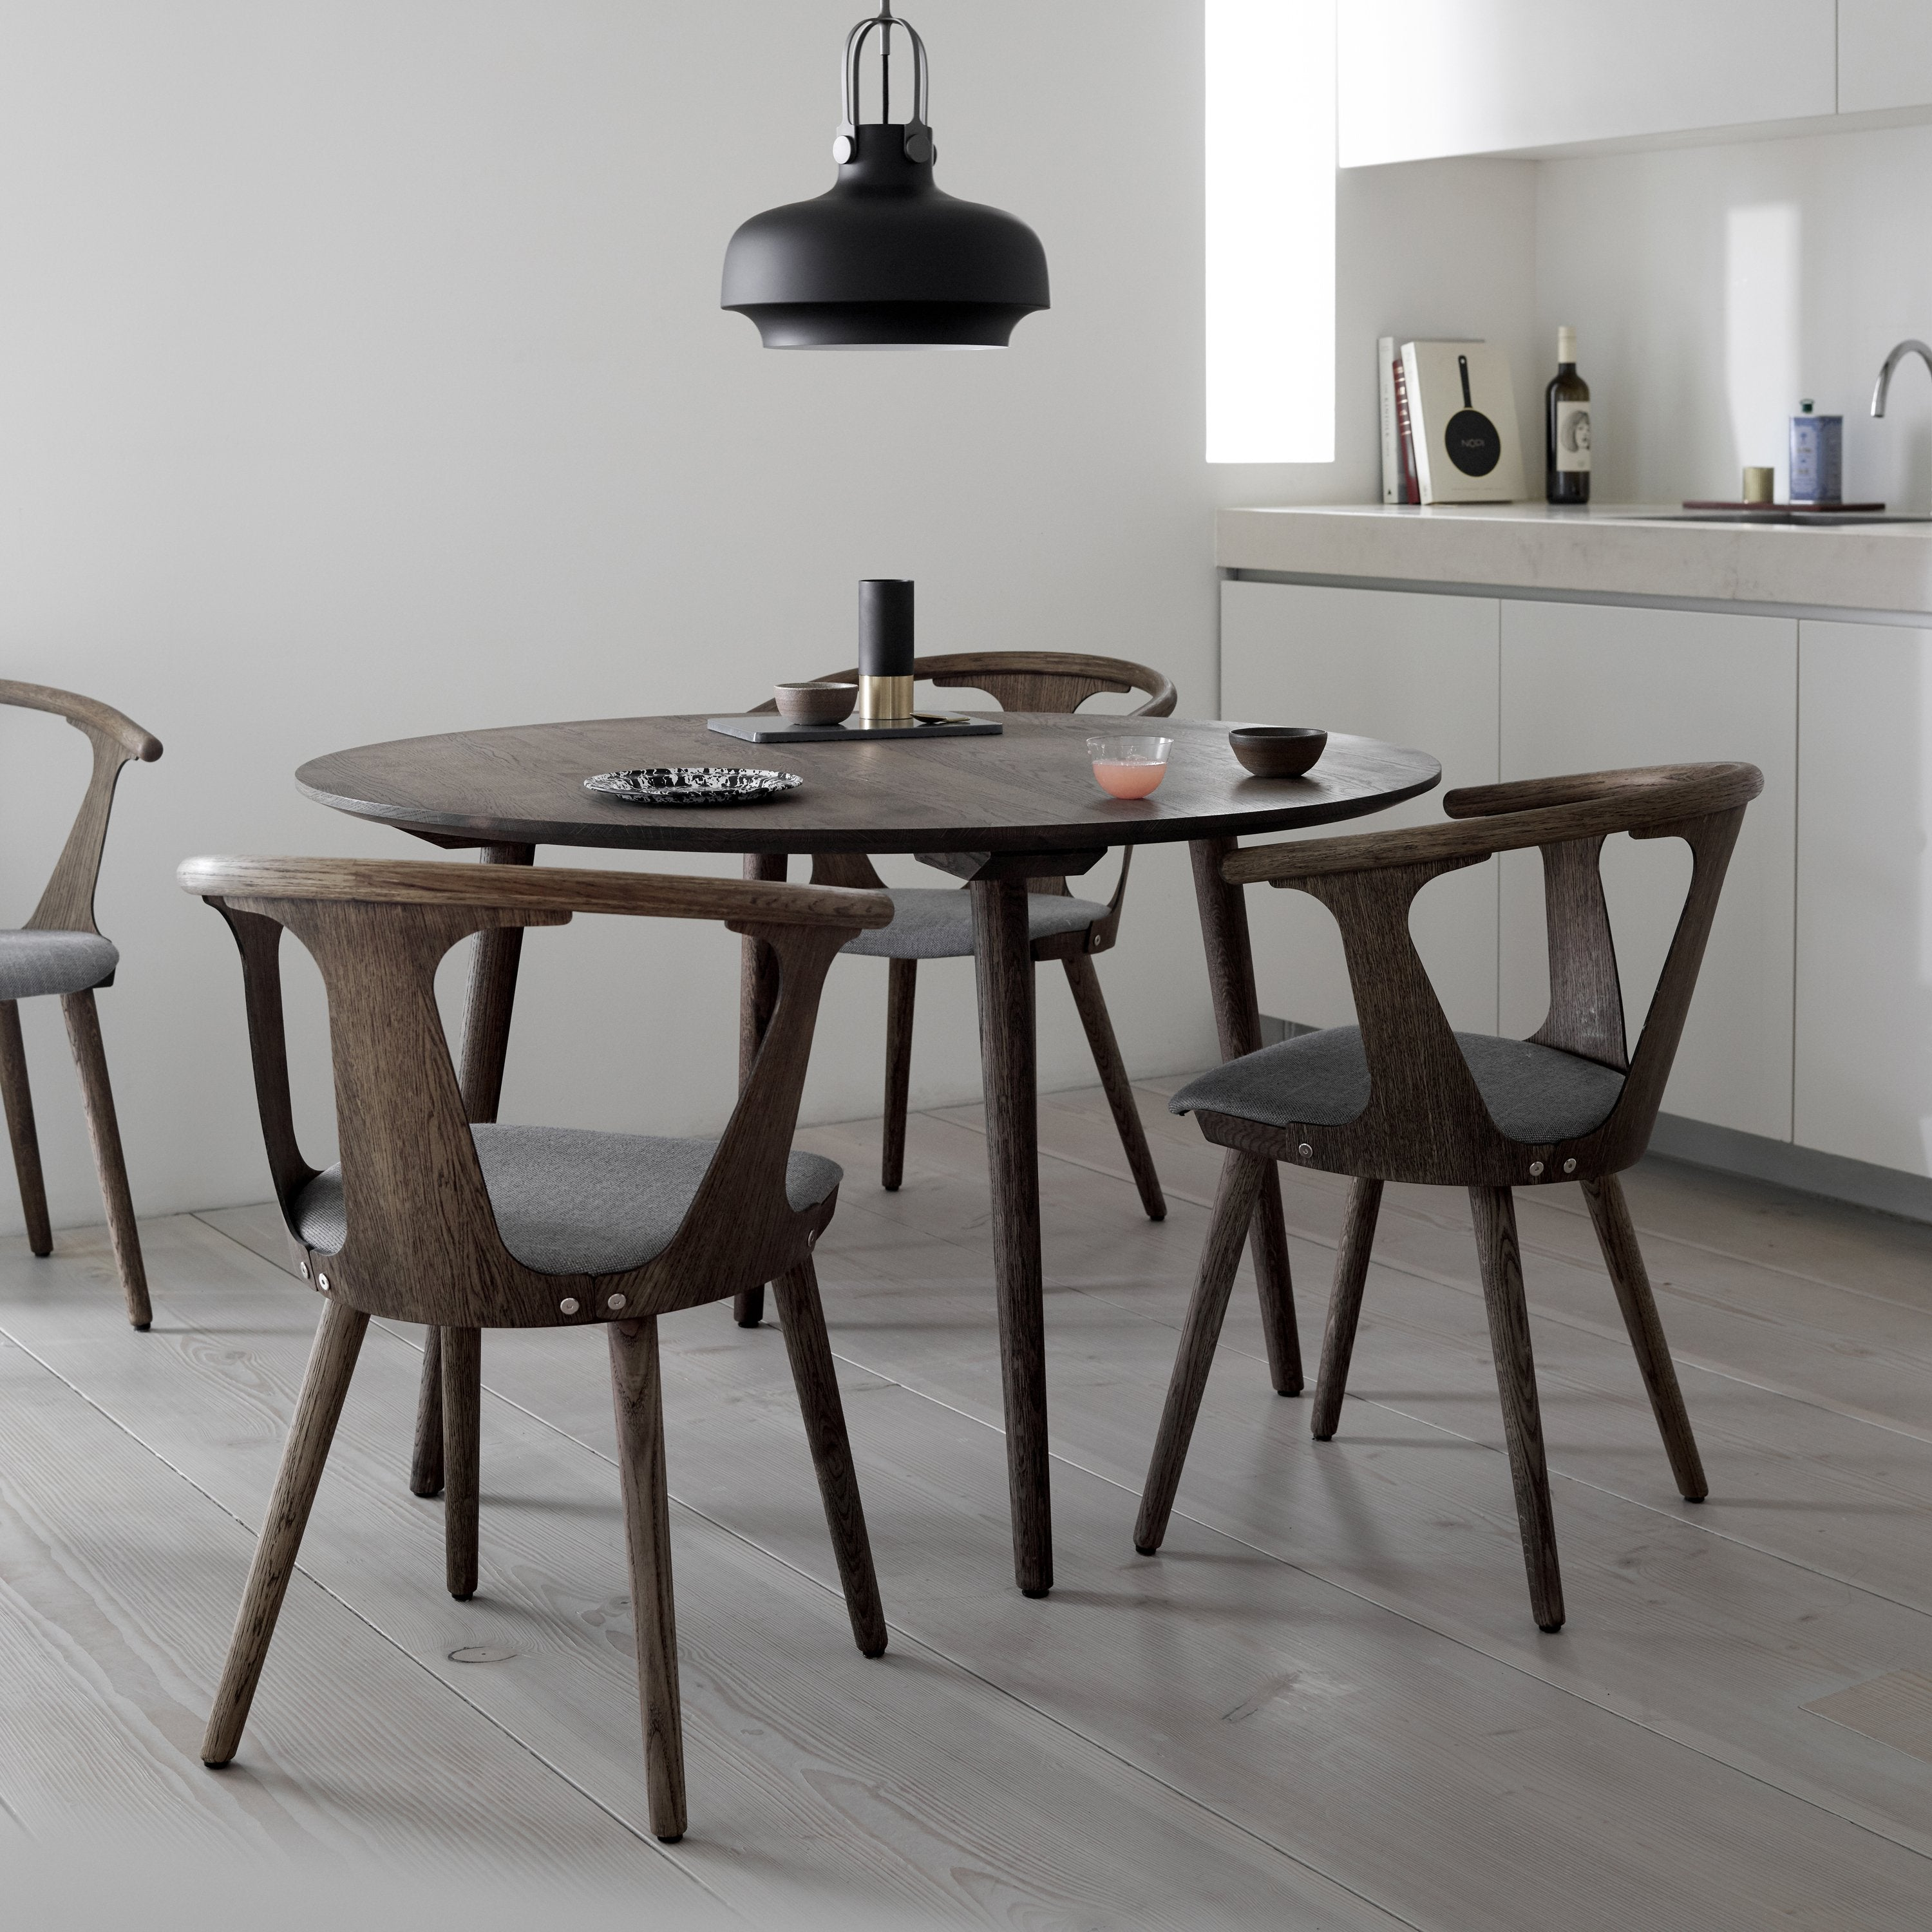 In Between Round Dining Table SK3 + SK4